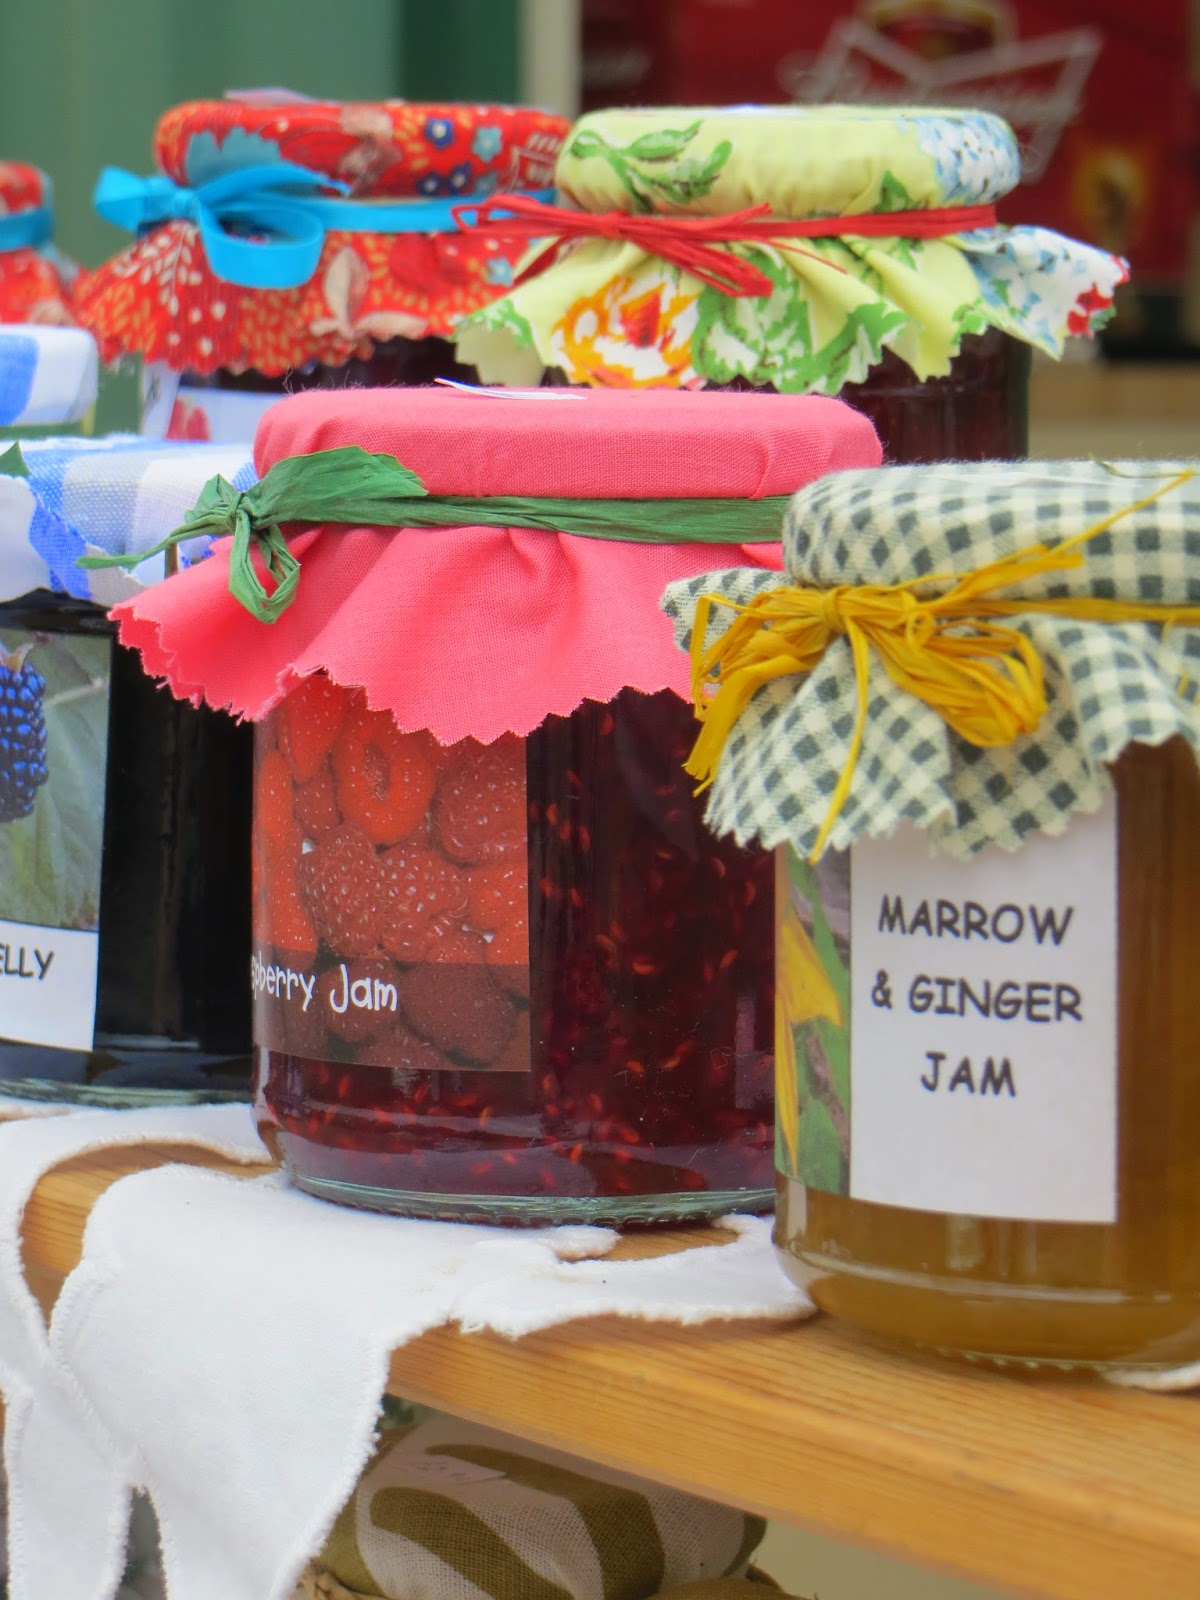 a selection of jams were available to buy from an allotment holder